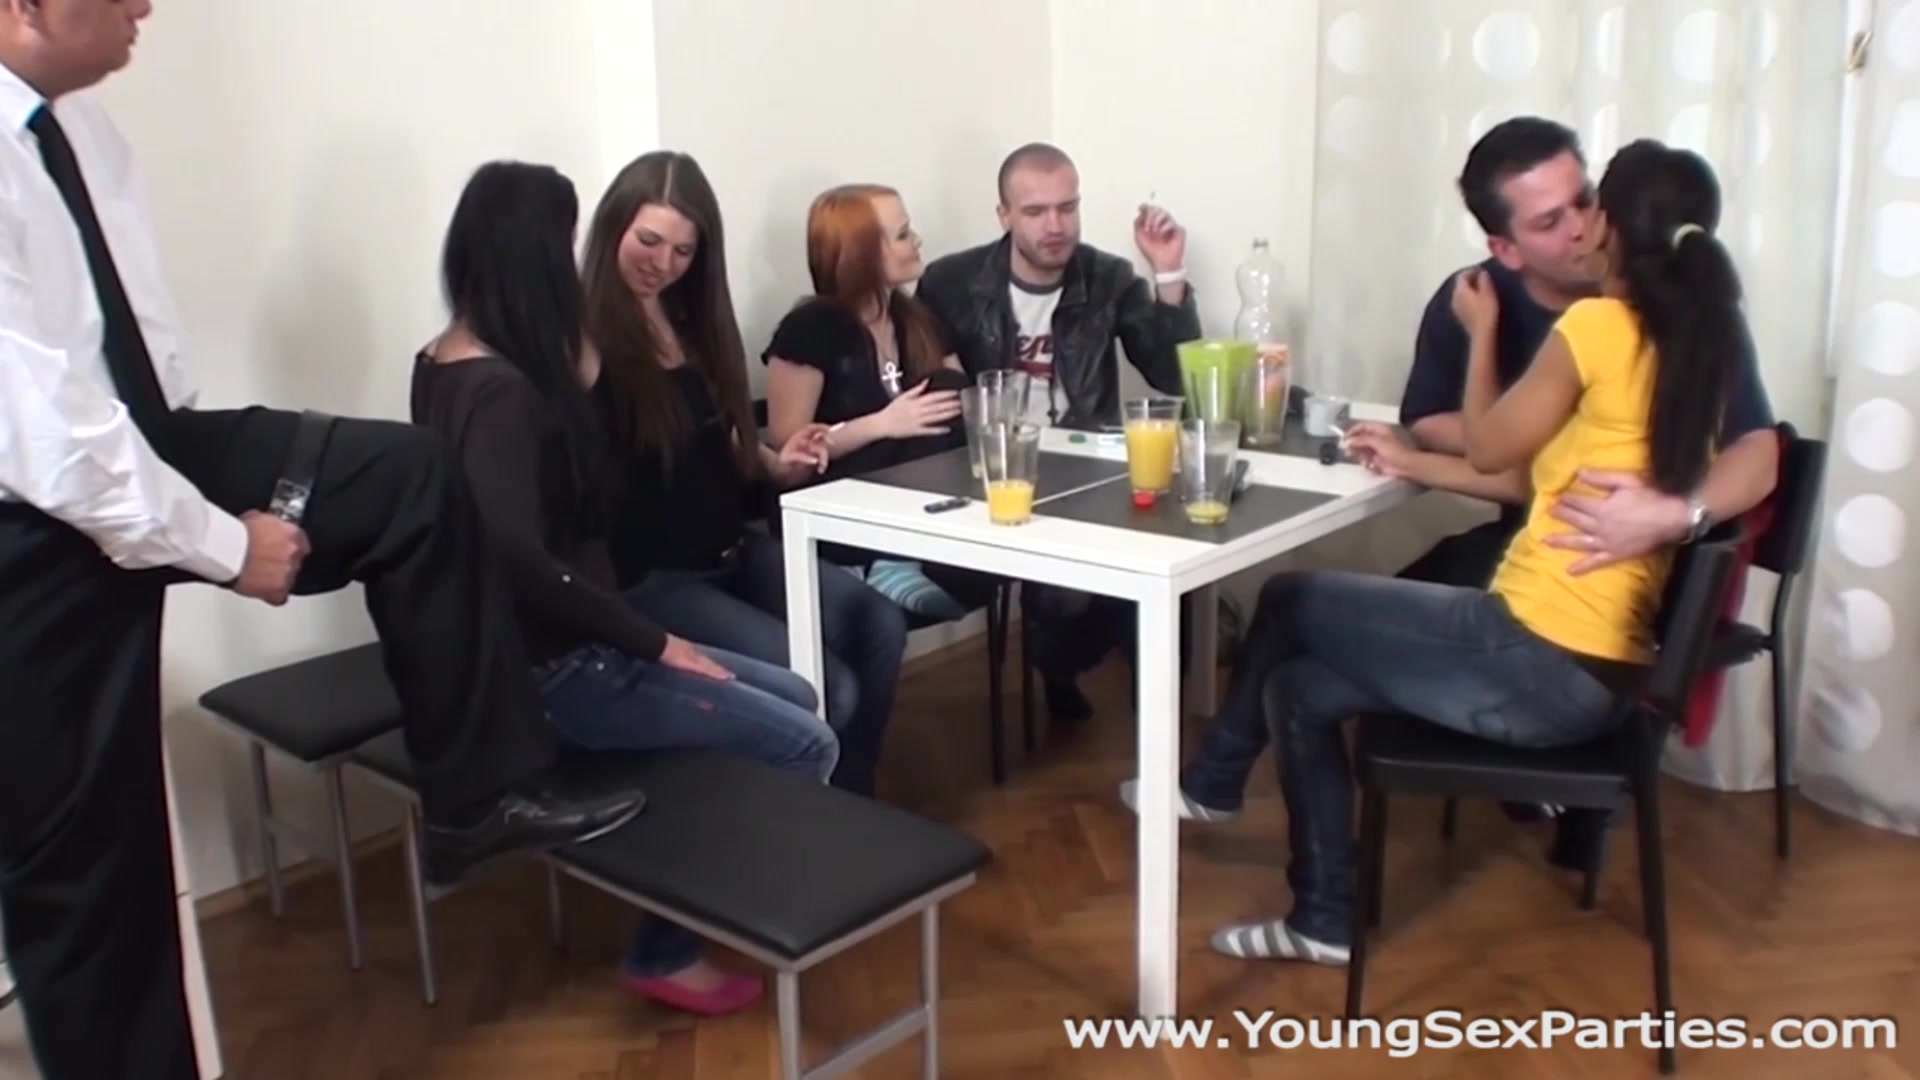 Young Sex Parties - Isabella Chrystin - Chelsy Sun - Sex party with older spectator